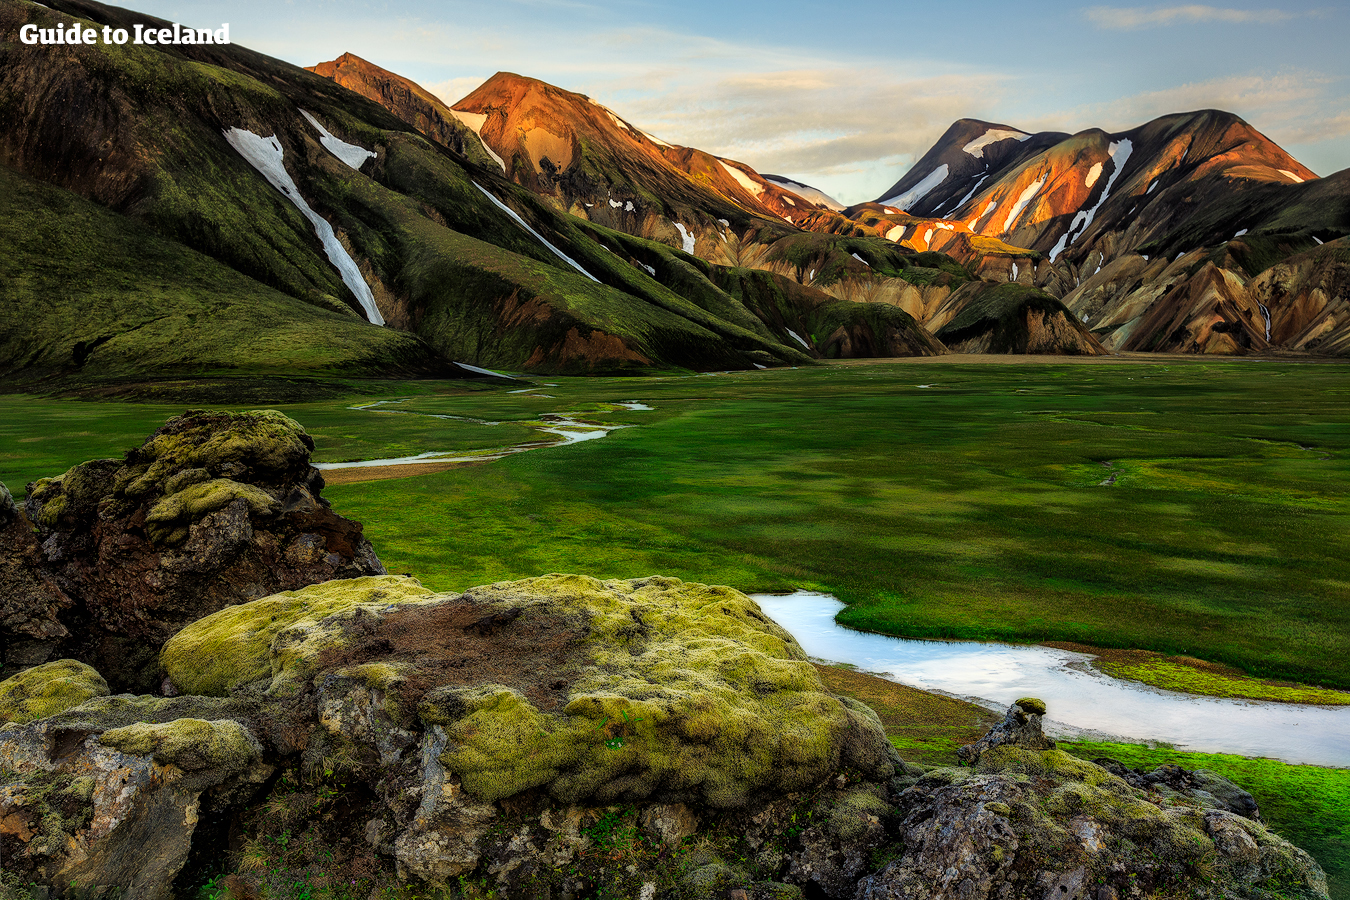 Icelandic Literature for Beginners | Guide to Iceland